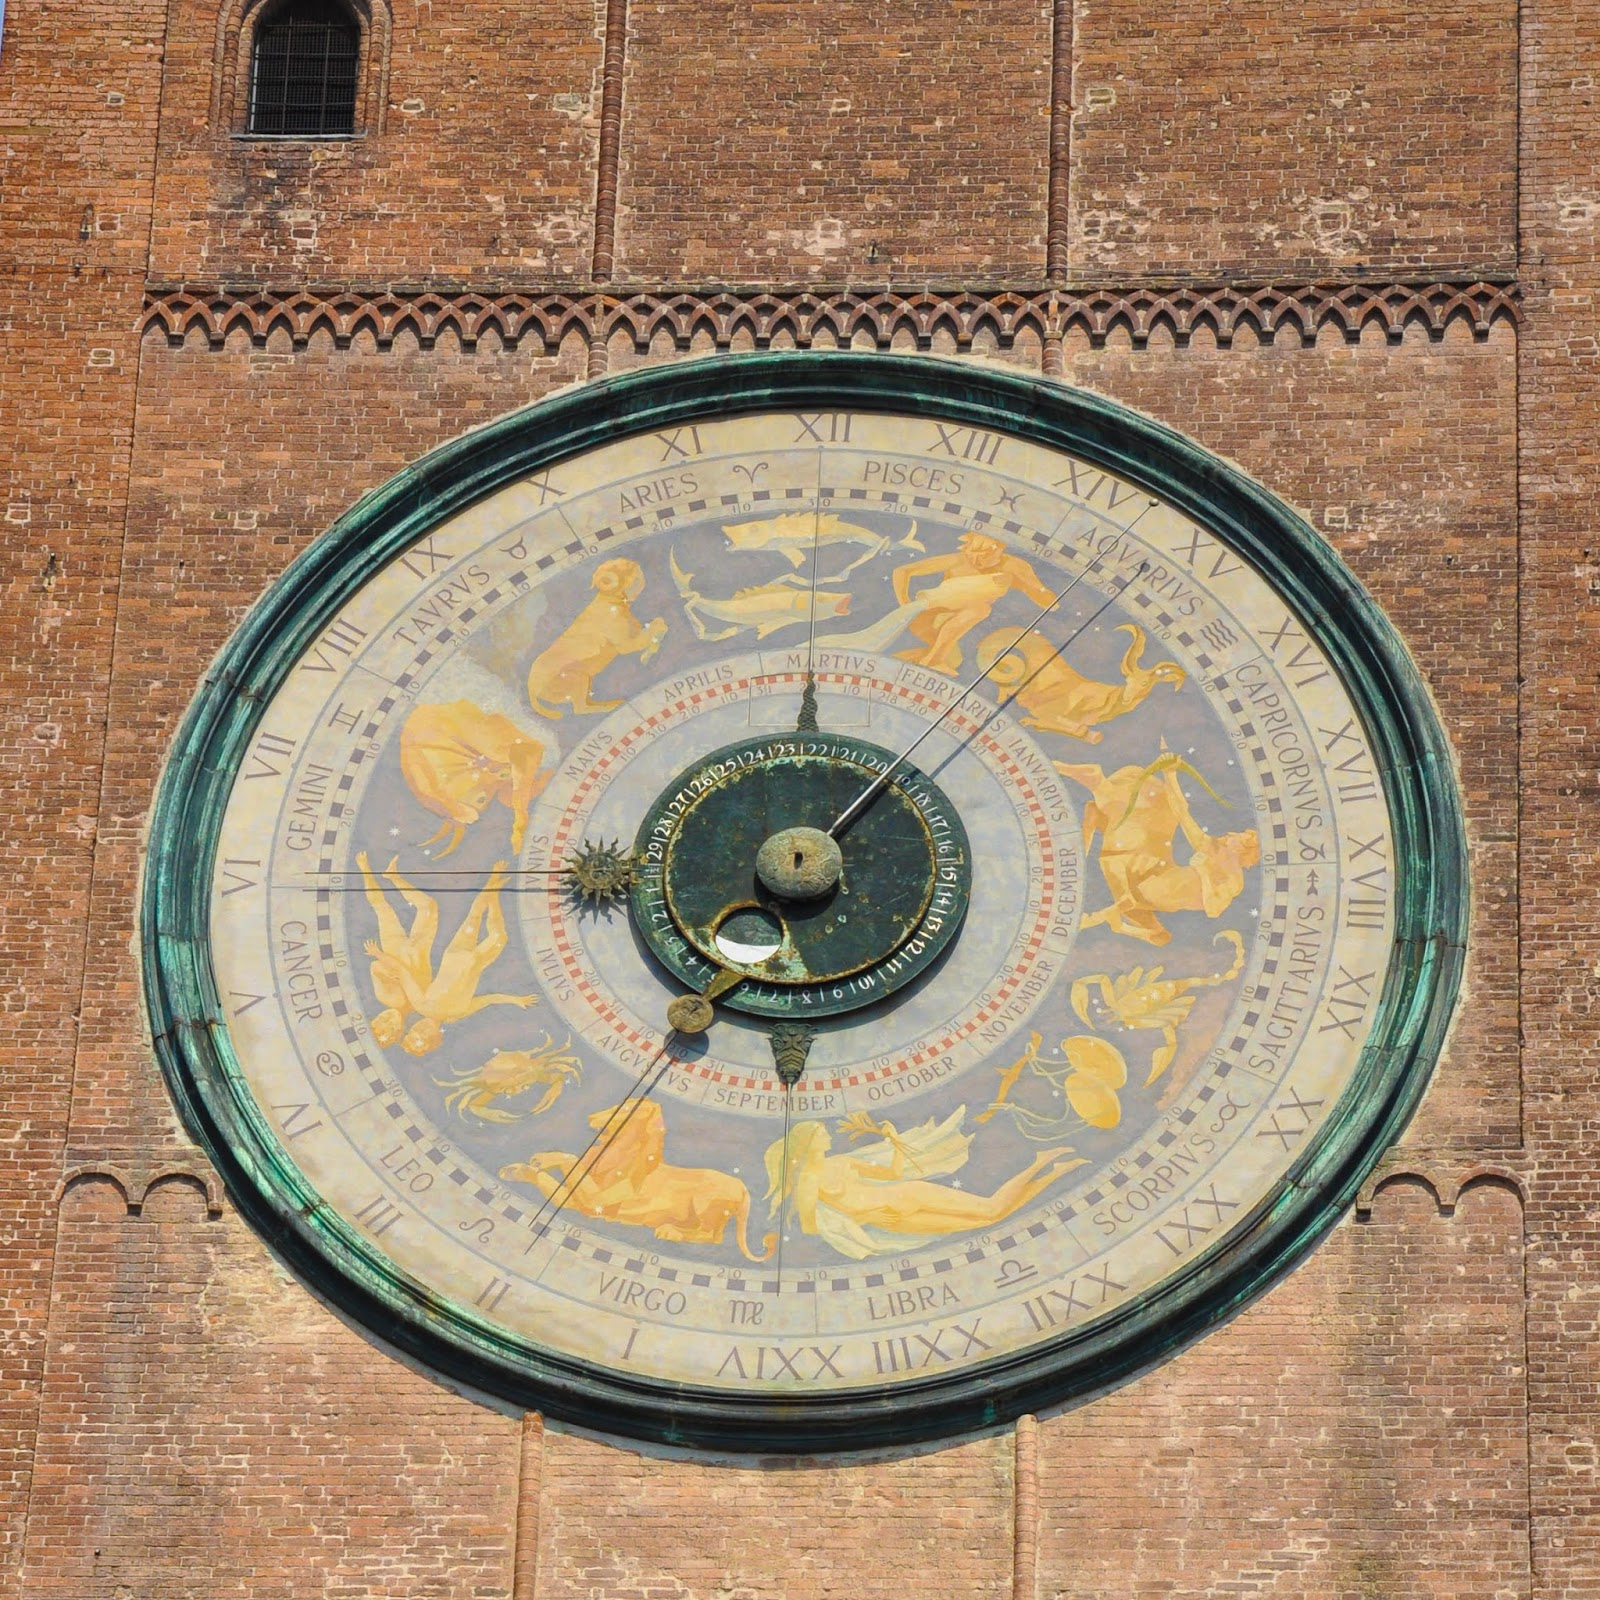 The astronomical clock, Campanile, Duomo, Cremona, Italy